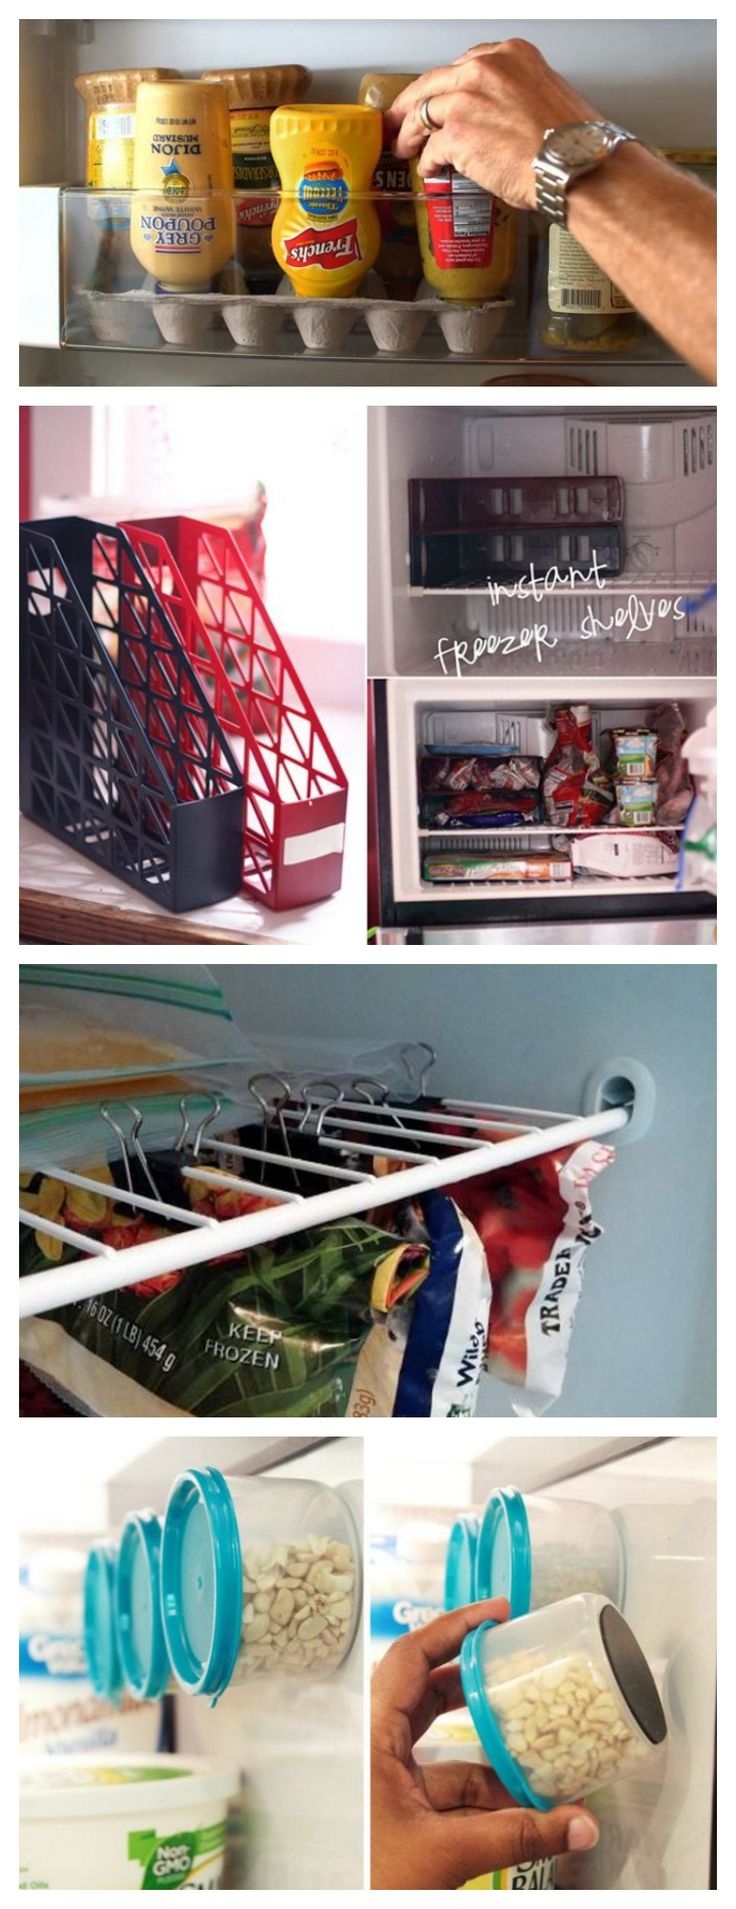 11 brilliant ways to organize your fridge luxury car lifestyle pinterest stauraum schaffen. Black Bedroom Furniture Sets. Home Design Ideas